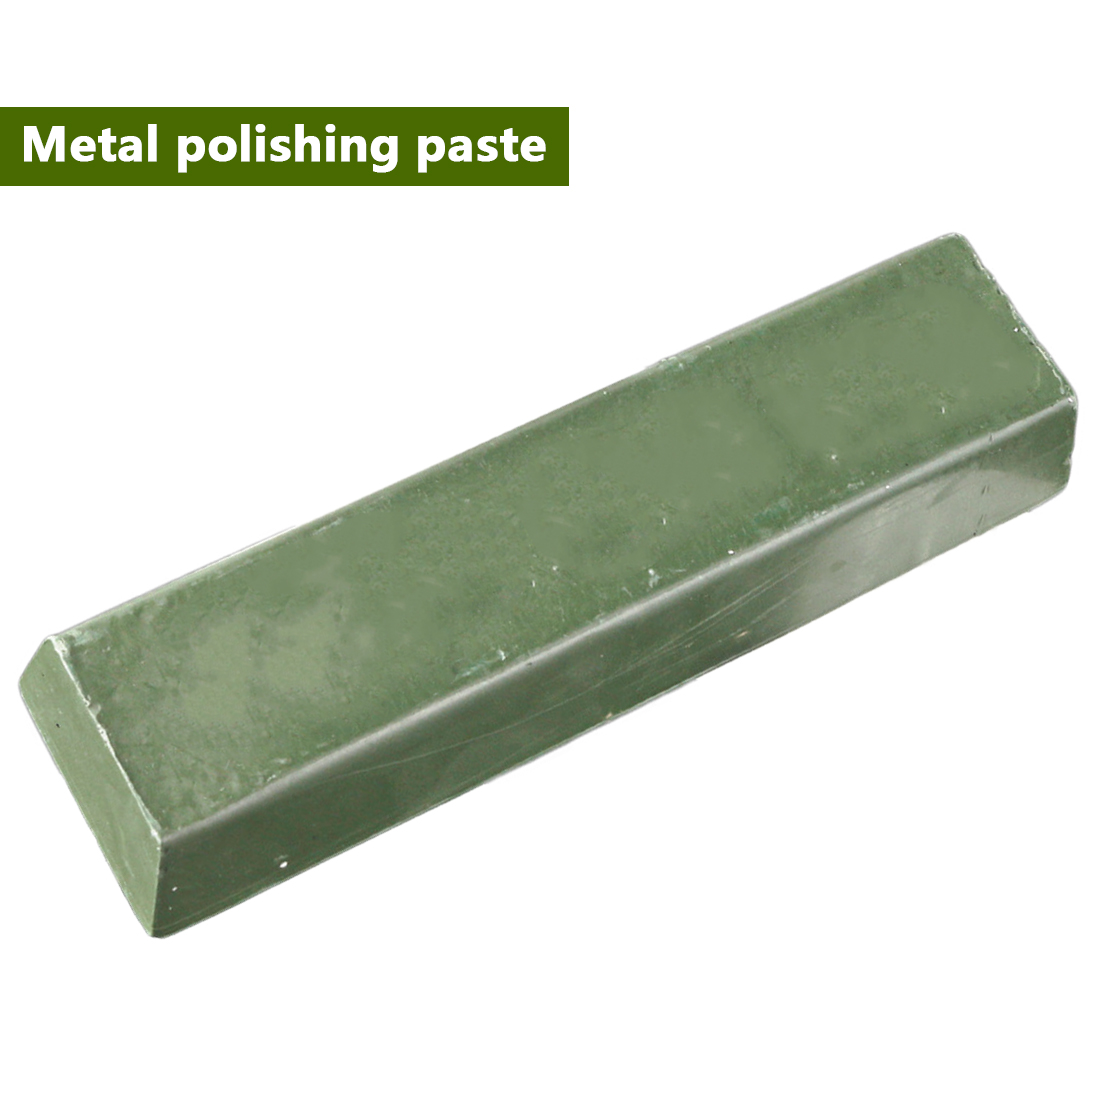 metal paste polishing for stainless steel copper products aluminum products chromium oxide abrasive sharpener polishing wax Abrasive Sharpener Polishing Wax Paste For Stainless Steel ,Copper Products, Aluminum Products,Chromium Oxide Paste Polishing